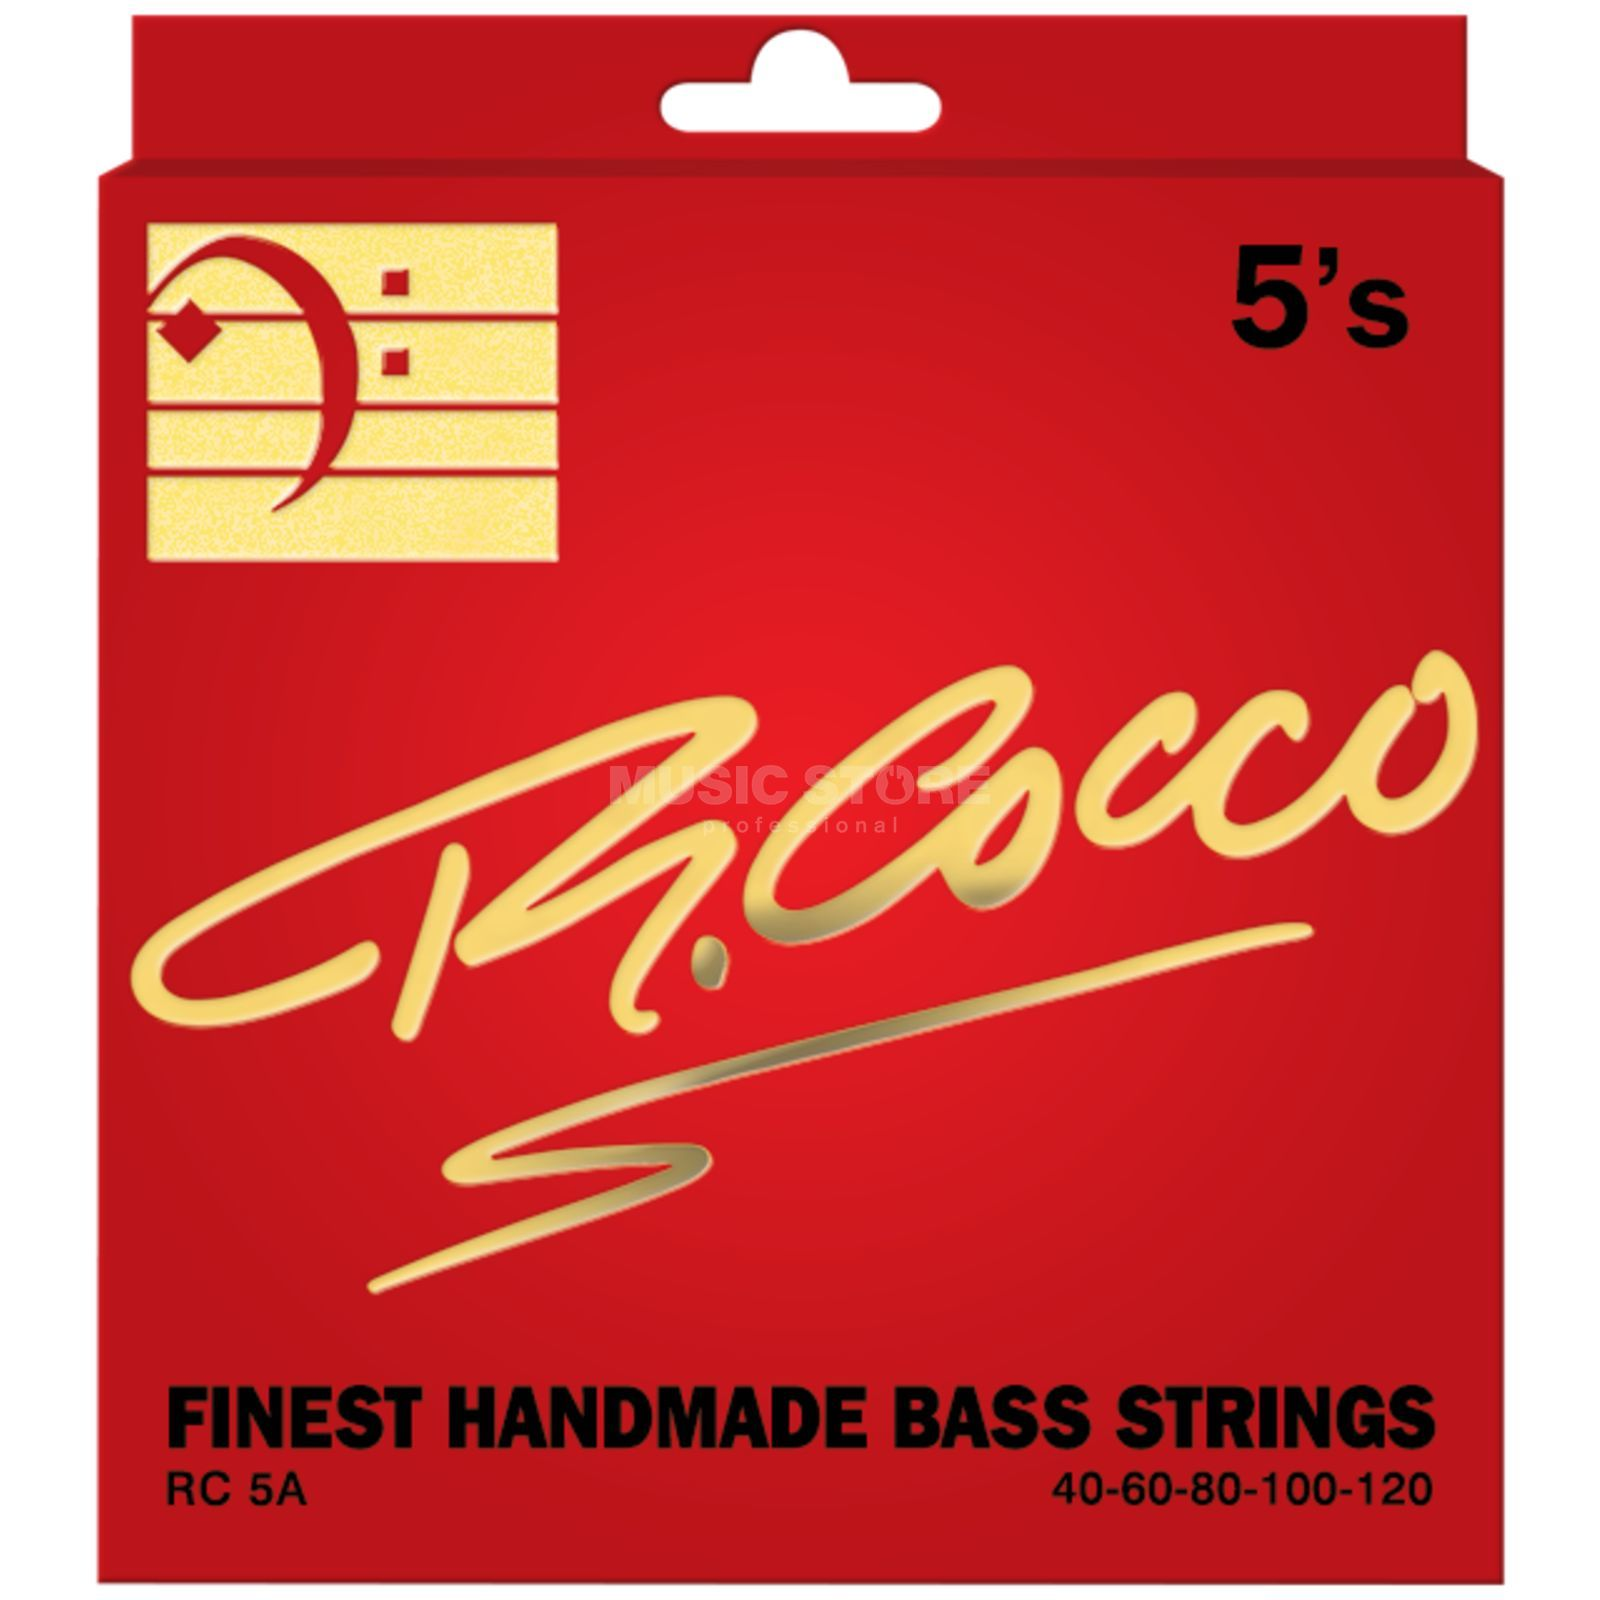 Cocco RC 5 A Classic Wound 40-120 Produktbild